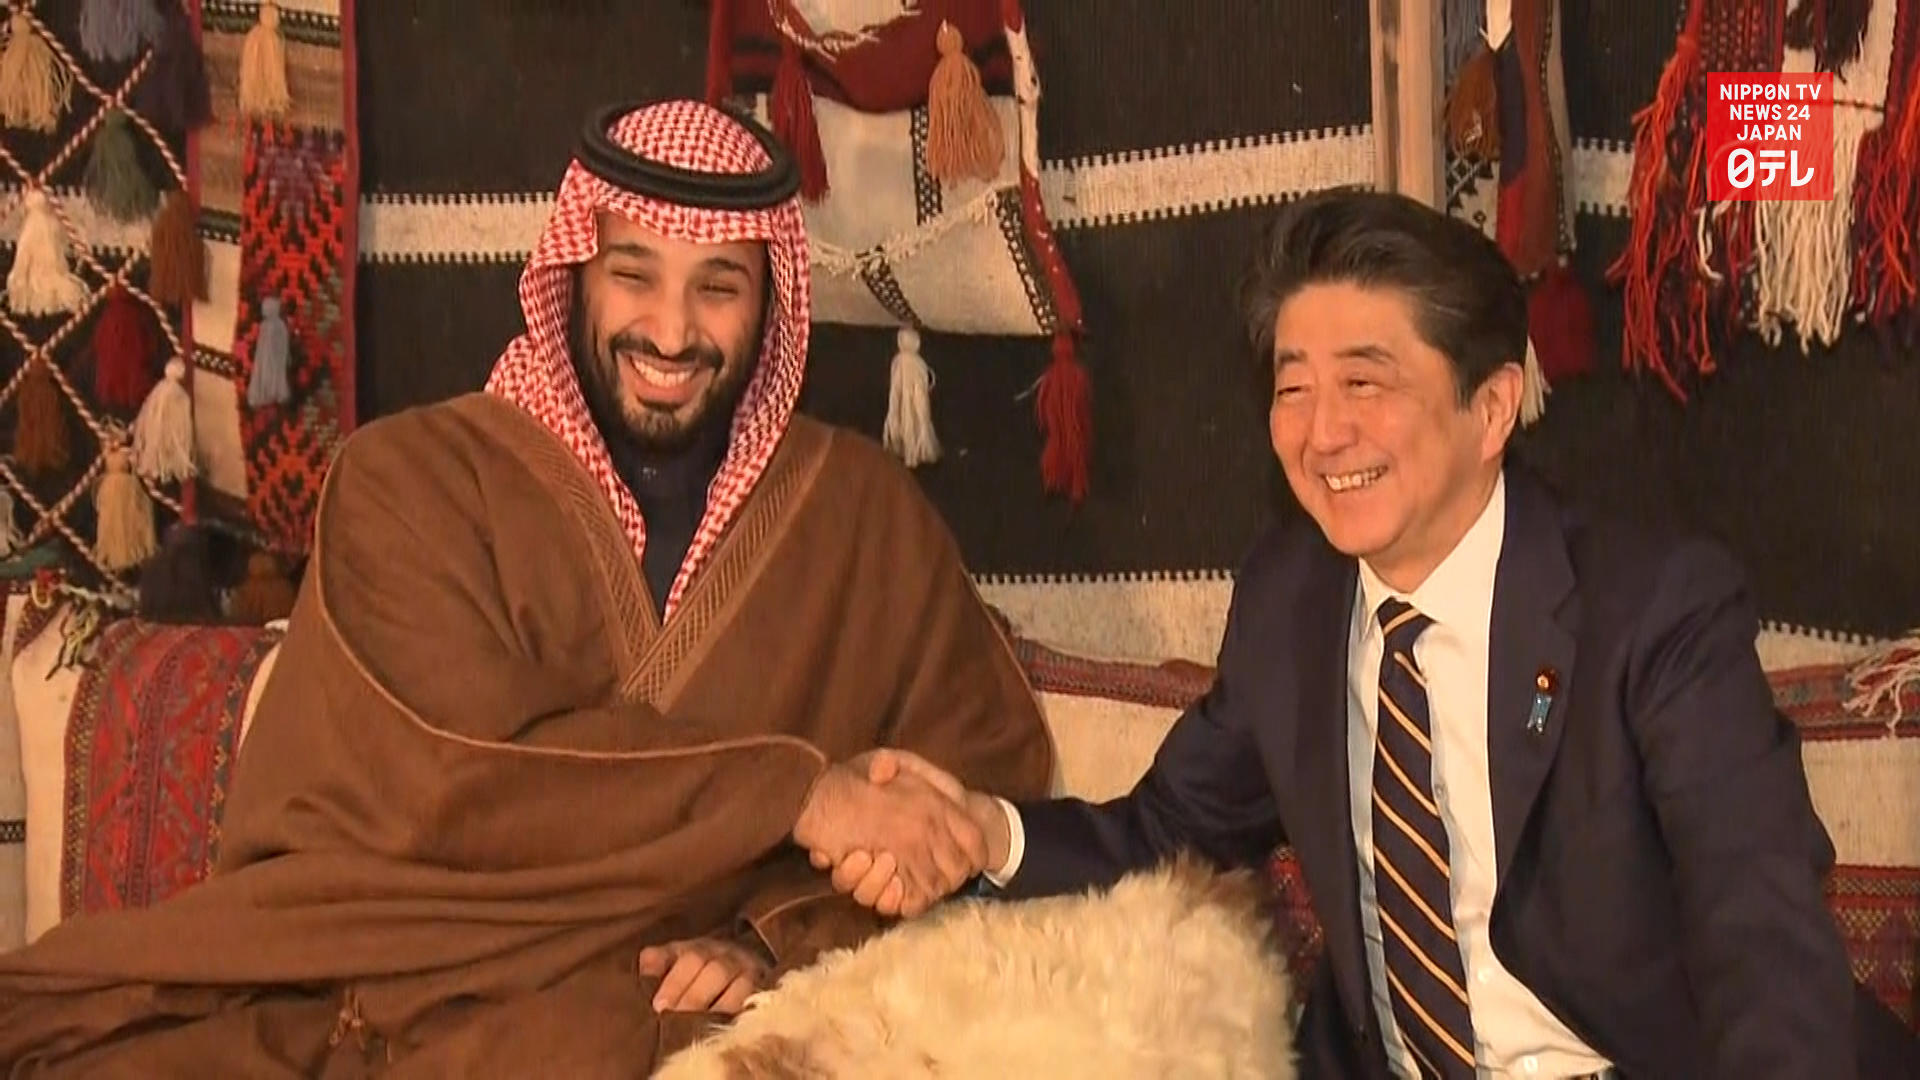 PM Abe seeks Saudi, UAE help for Mideast stability